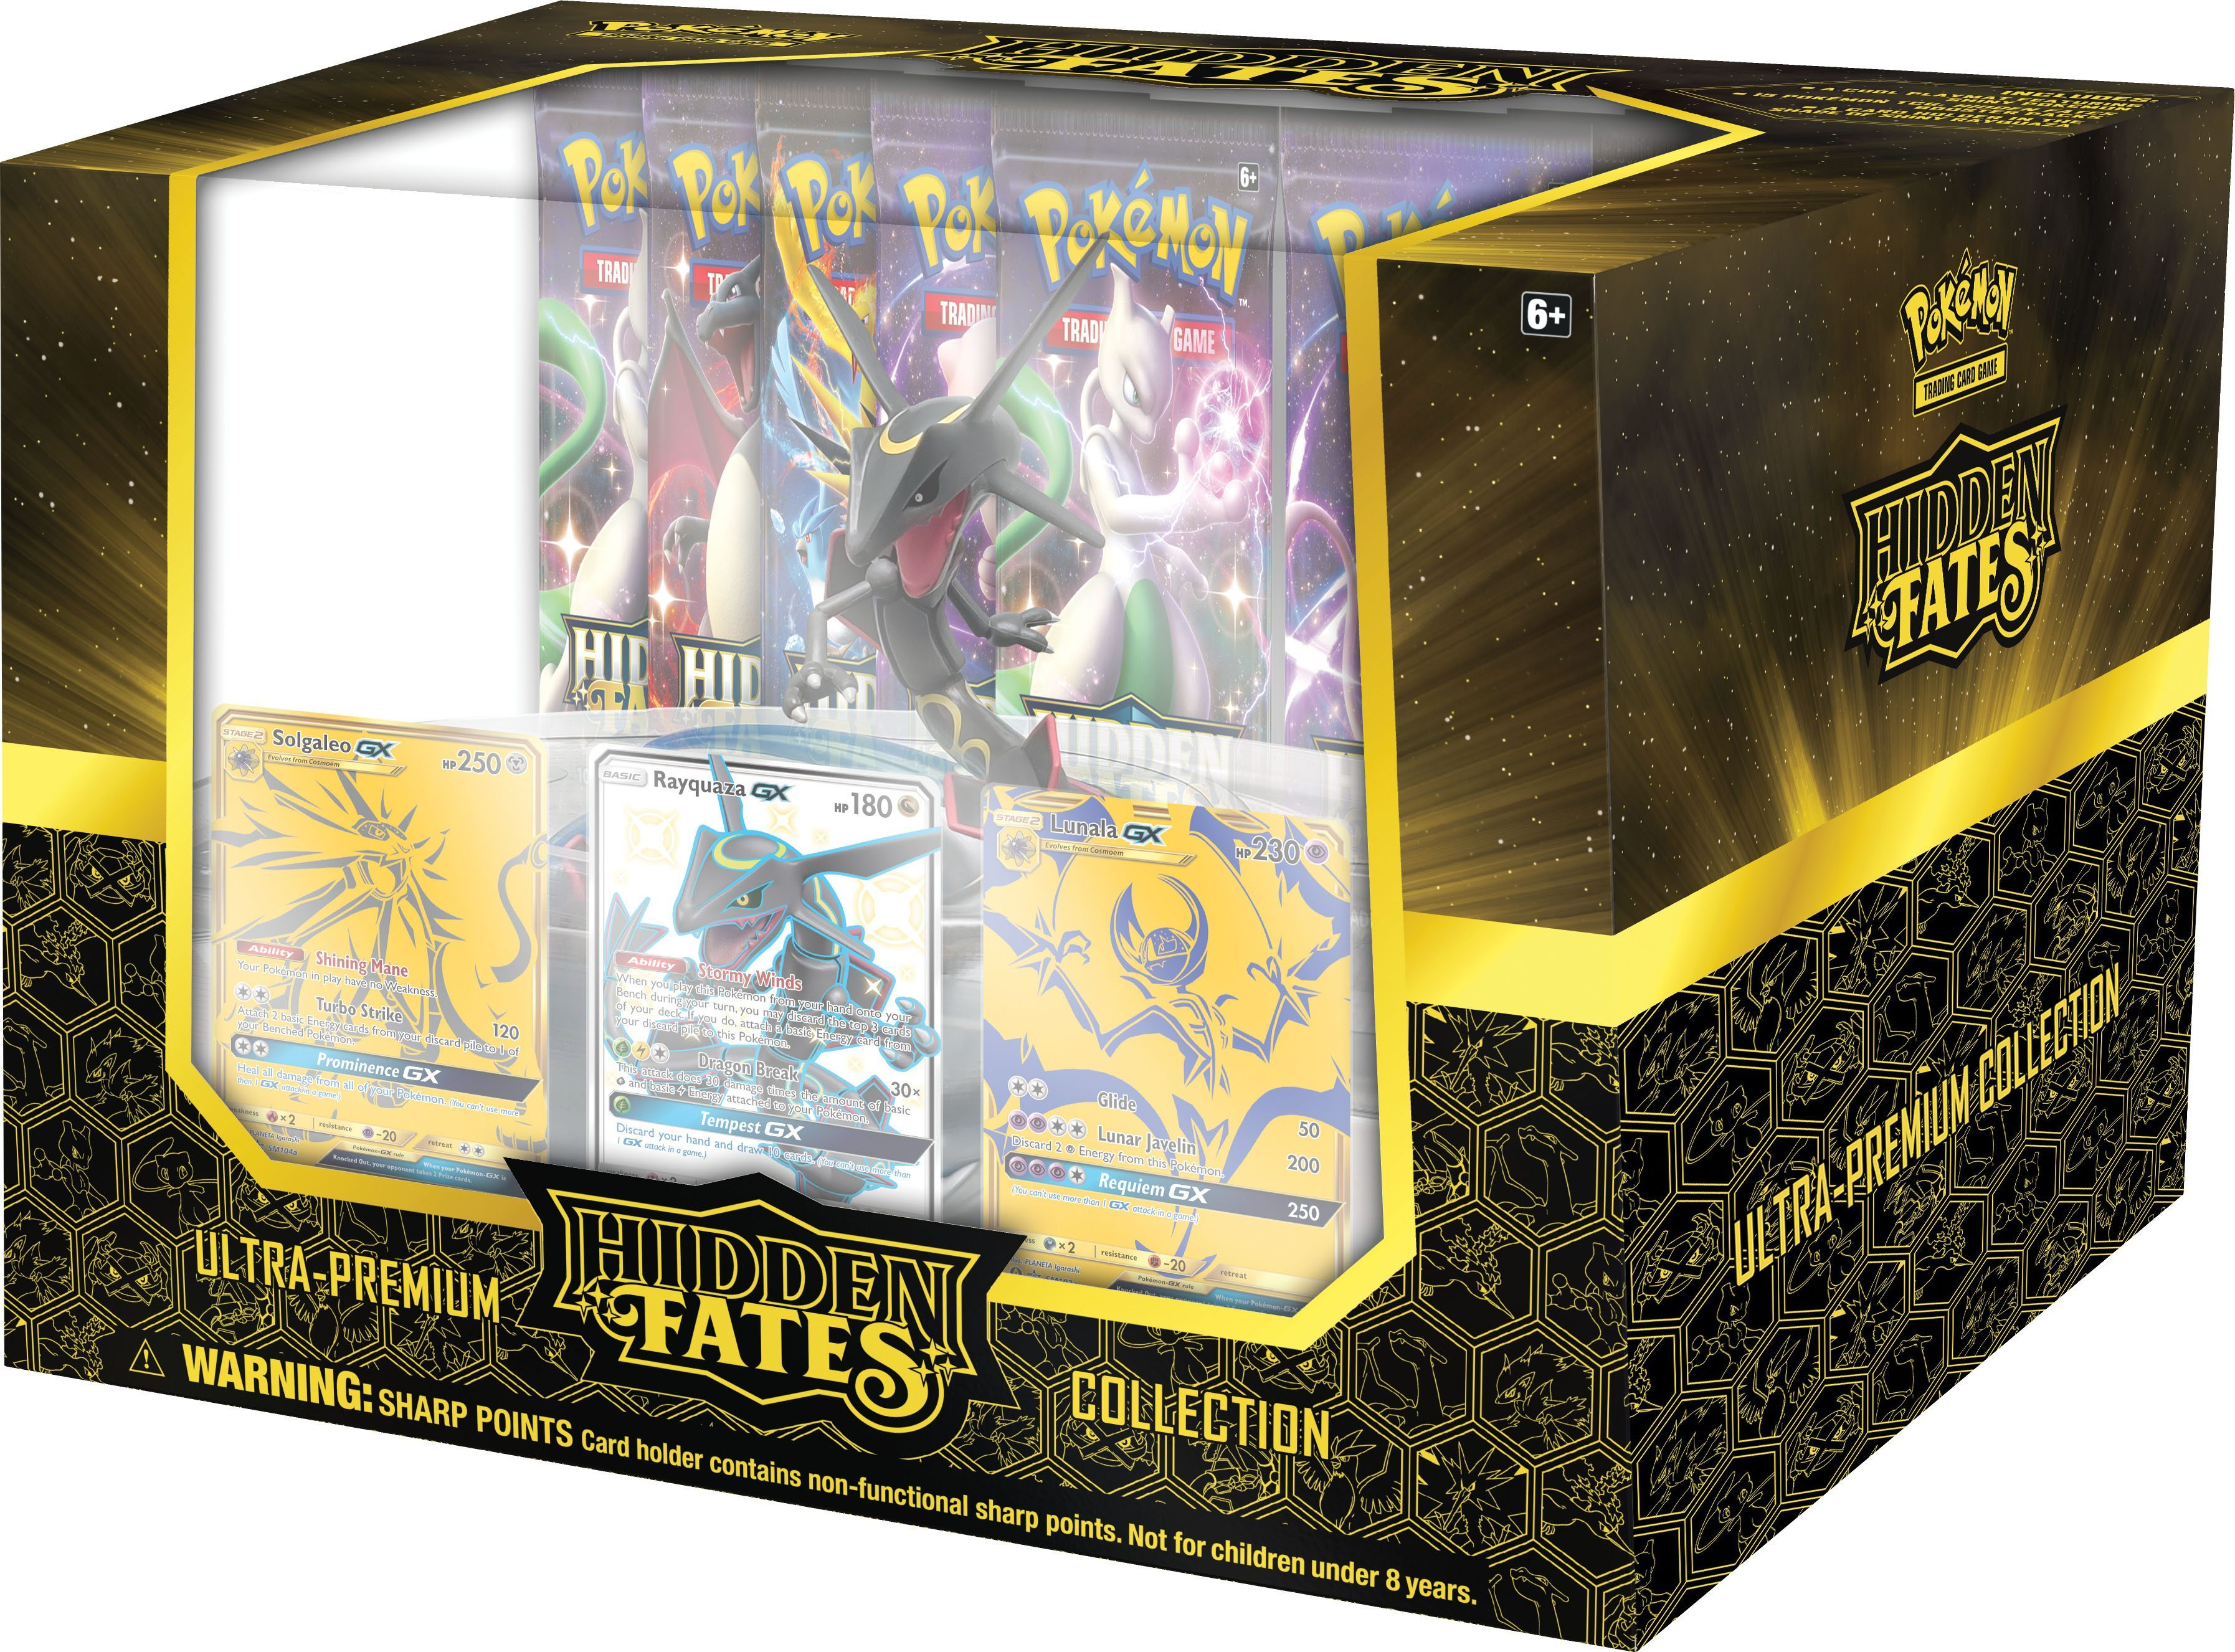 Hidden-Fates-Ultra-Premium-Collection-Box-Side-View